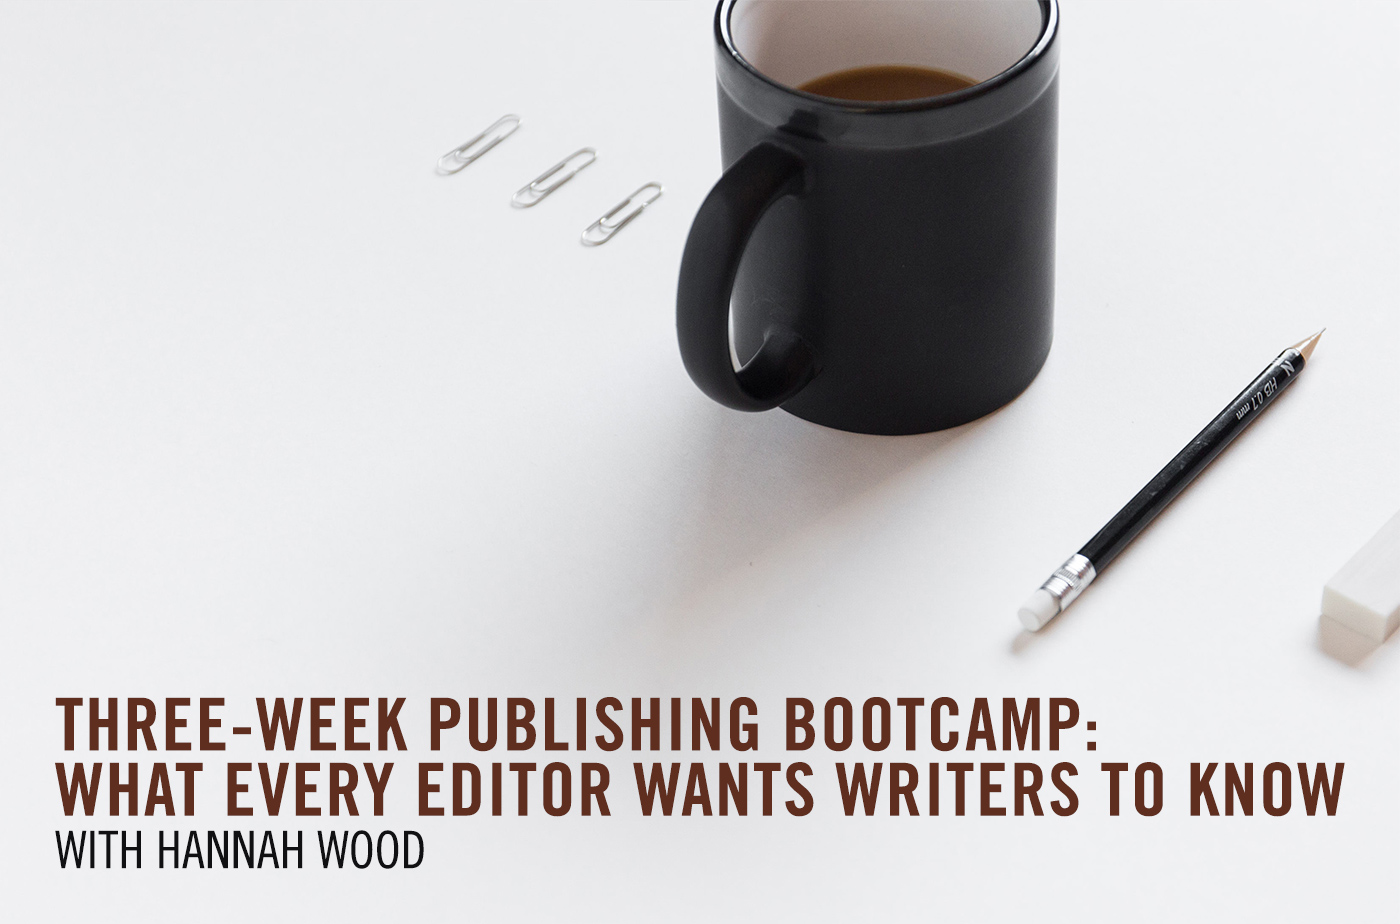 Catapult online classes: Hannah Wood, 3-Week Publishing Bootcamp: What Every Editor Wants Writers to Know , Publishing, Bootcamp